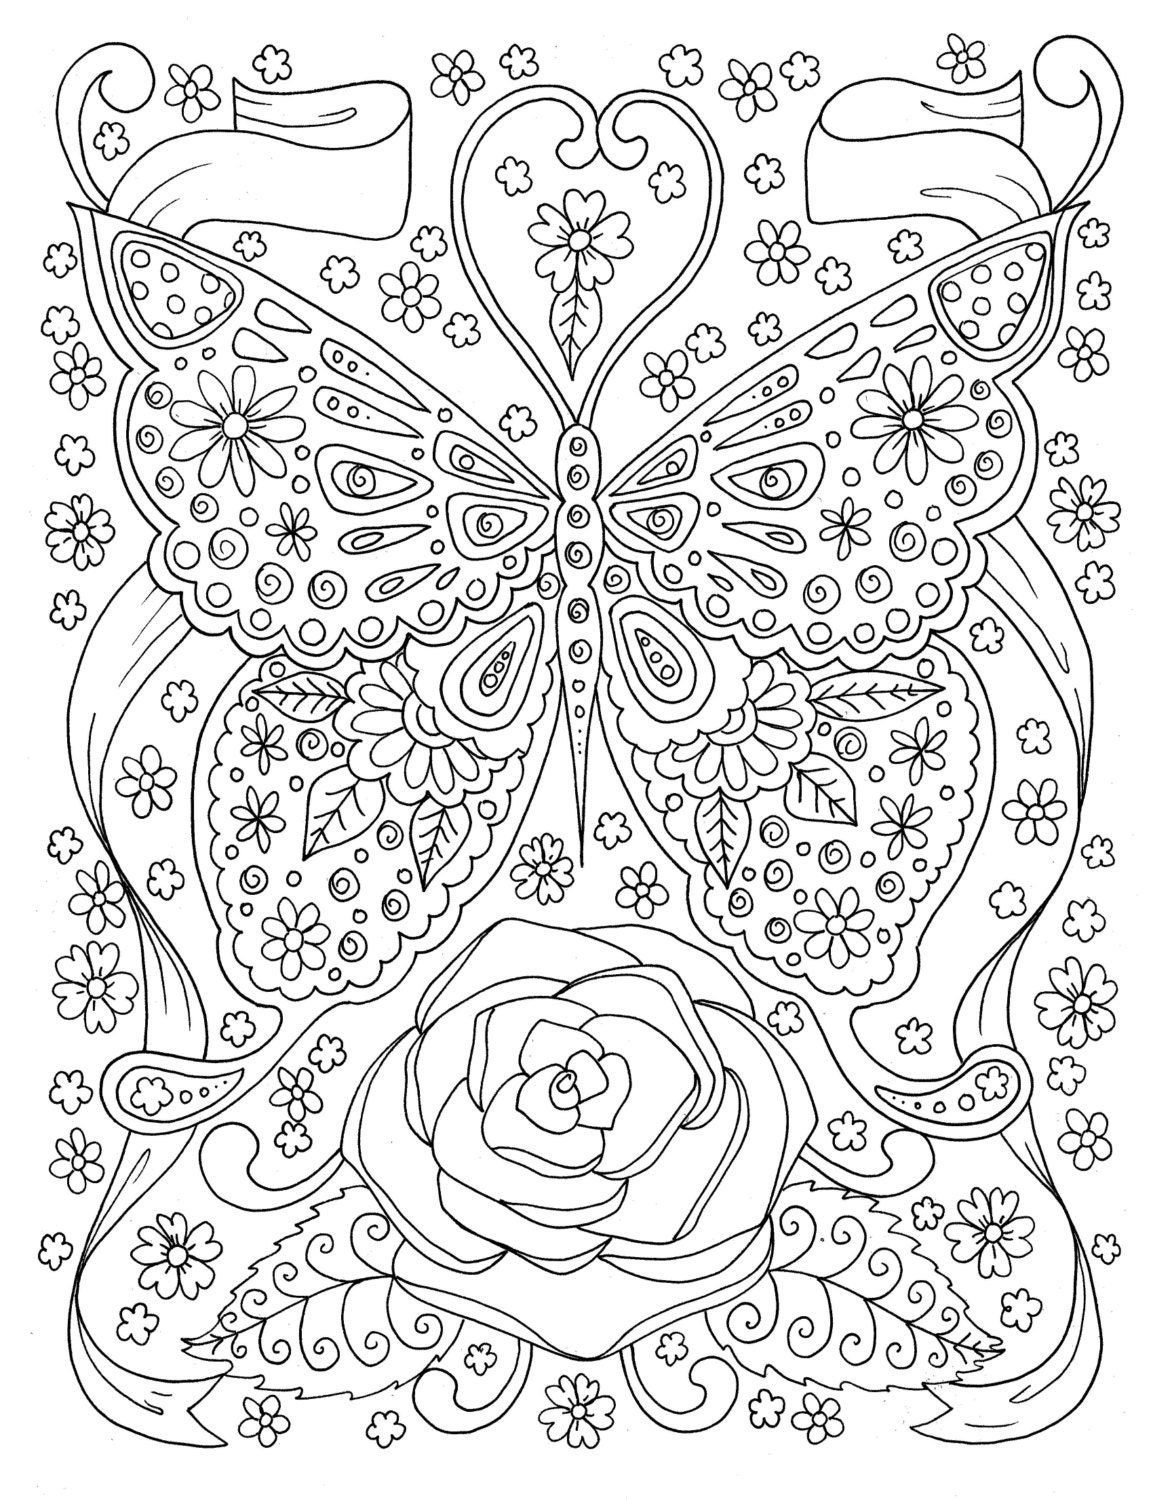 Butterfly Coloring Page Adult Coloring Book Digital